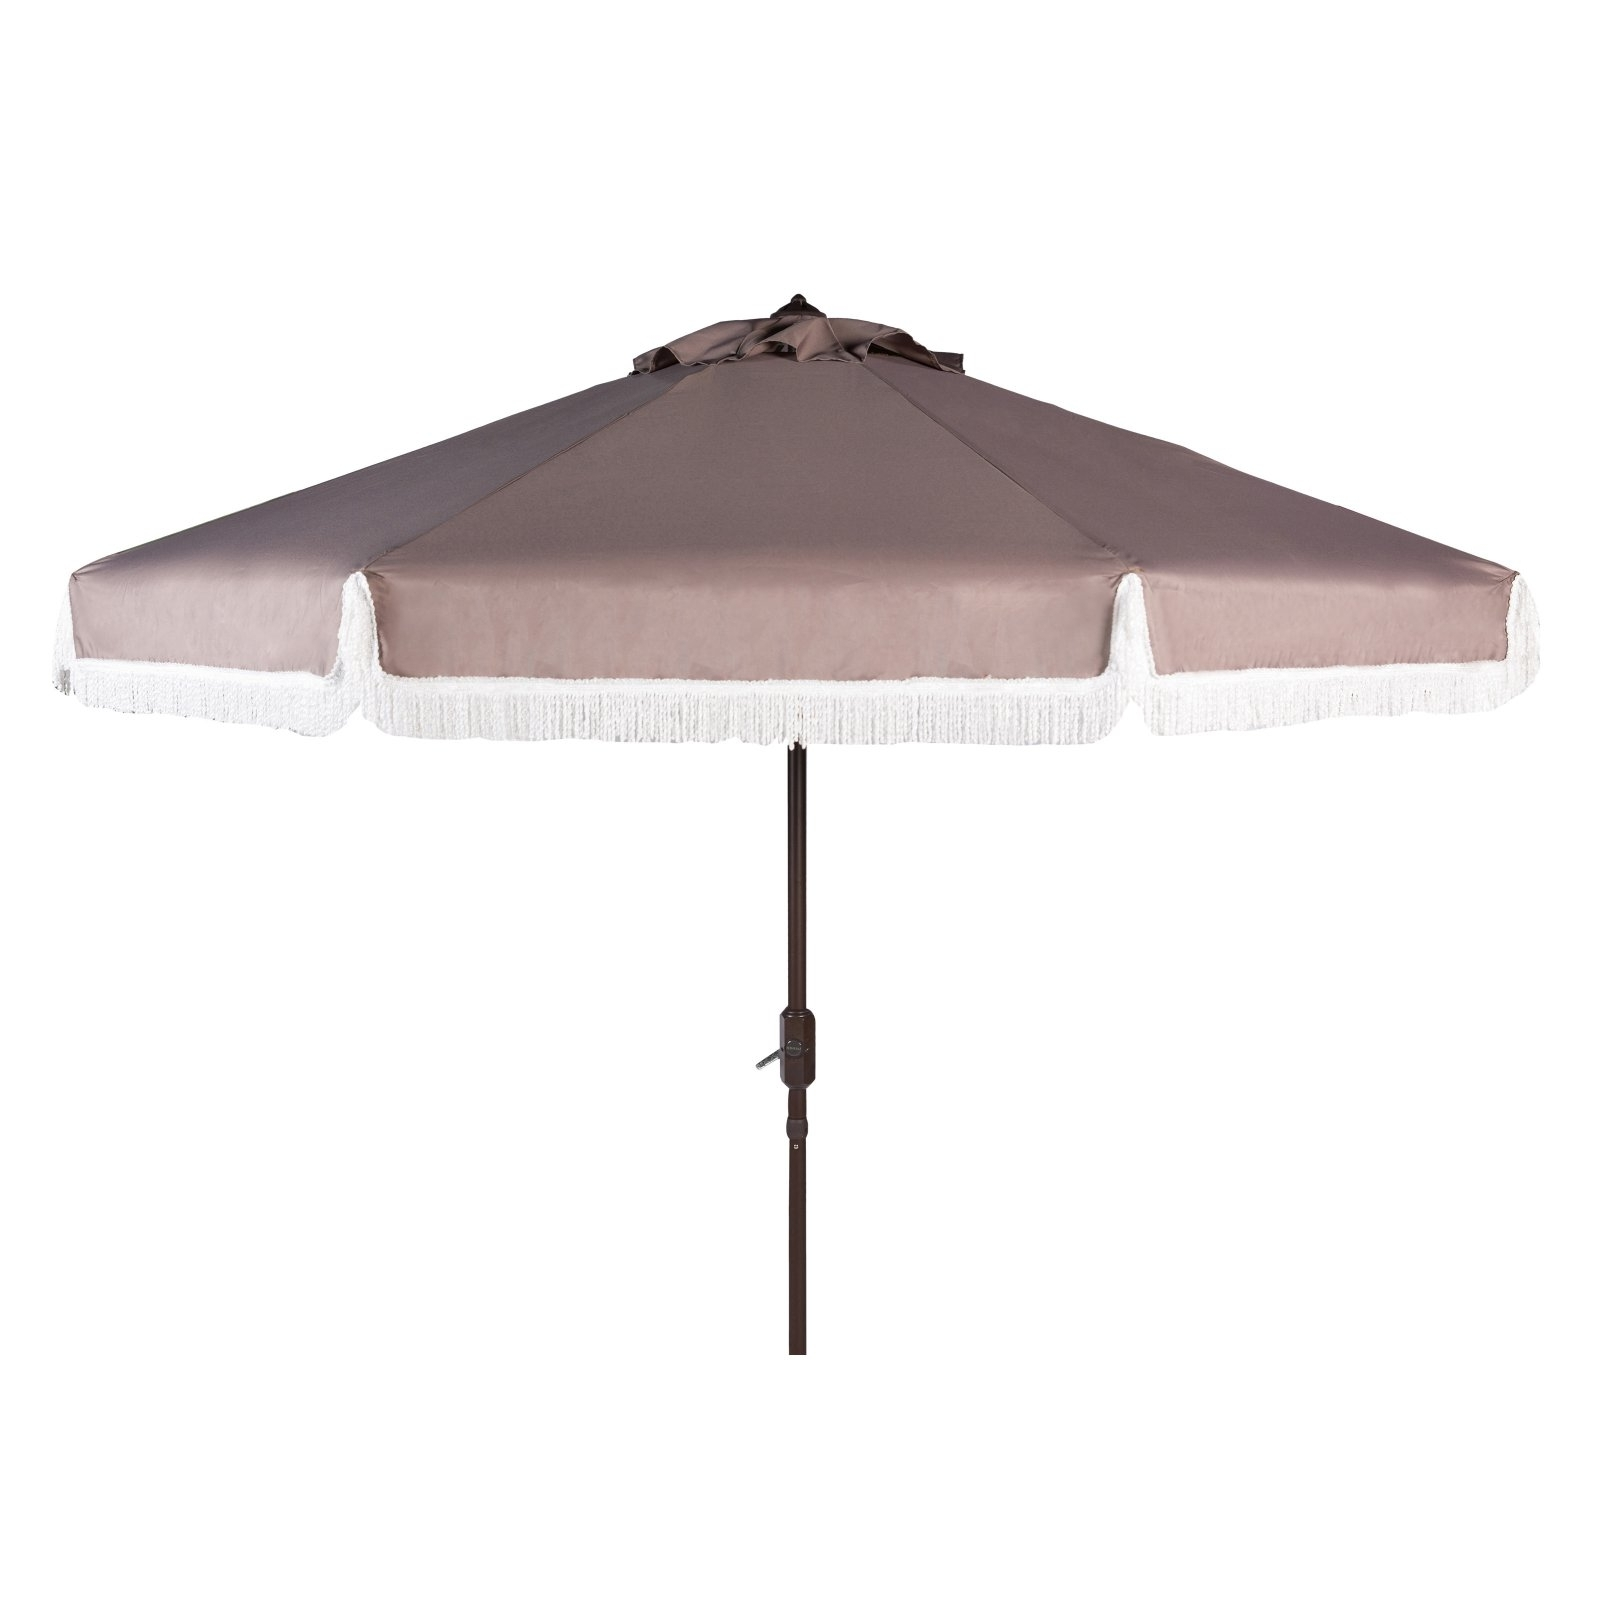 Safavieh Milan Fringe 9' Crank Outdoor Umbrella, Multiple Colors In Most Recently Released Vinyl Patio Umbrellas With Fringe (View 13 of 20)